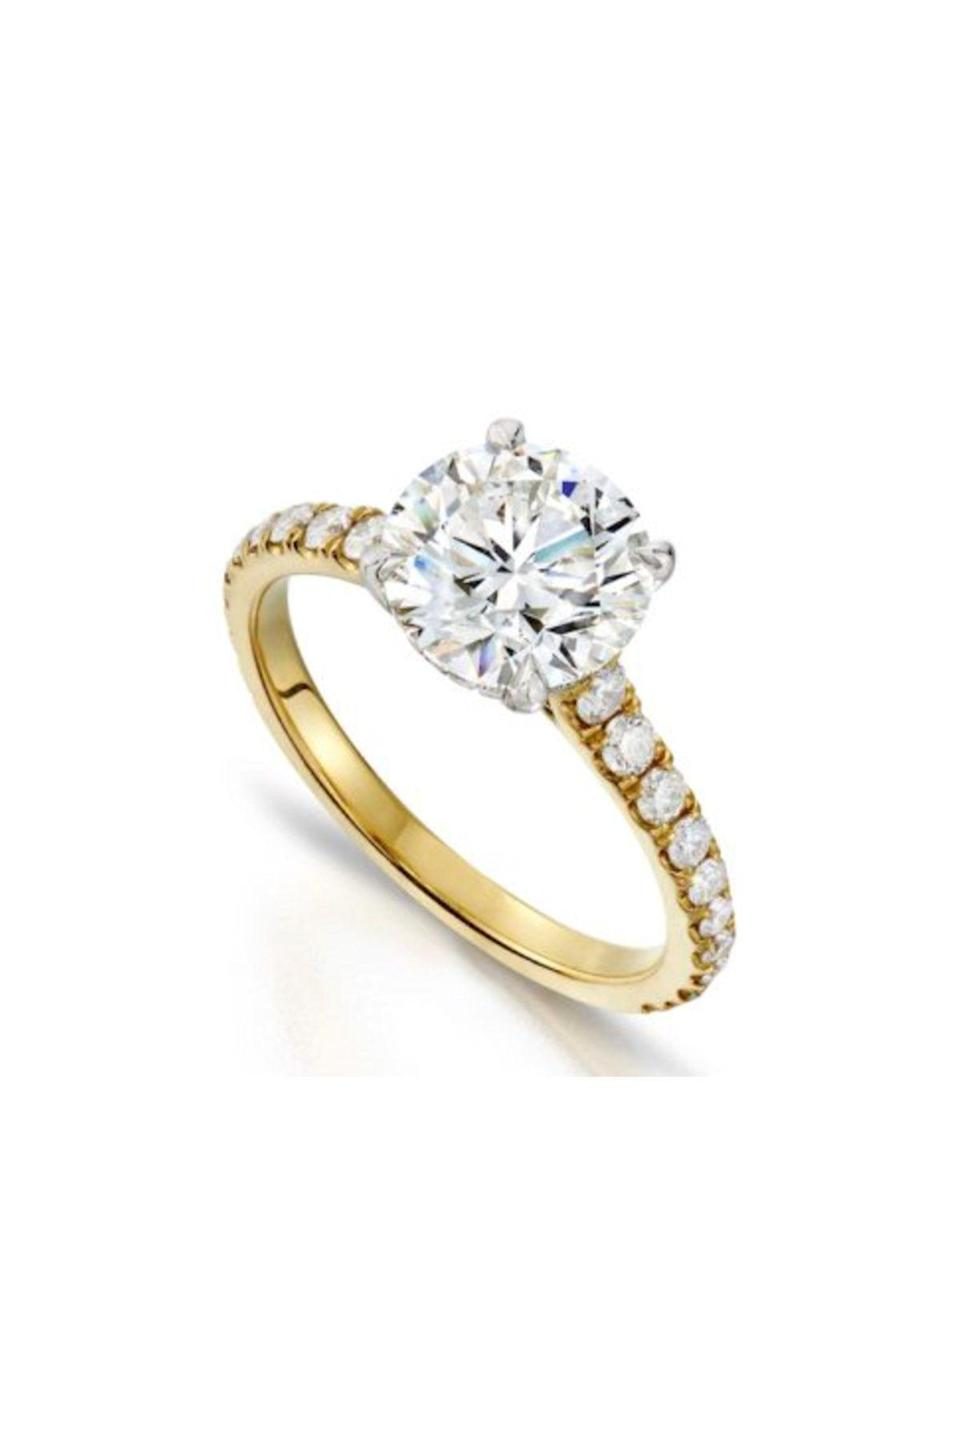 """<p><strong>Lauren Addison</strong></p><p>laurenaddison.com</p><p><a href=""""https://laurenaddison.com/jewels/"""" rel=""""nofollow noopener"""" target=""""_blank"""" data-ylk=""""slk:Shop Now"""" class=""""link rapid-noclick-resp"""">Shop Now</a></p><p>Lauren Addison has a repertoire of classic styles like this option, but she can also take a family heirloom or parts of a longtime favorite to create a custom piece.</p>"""